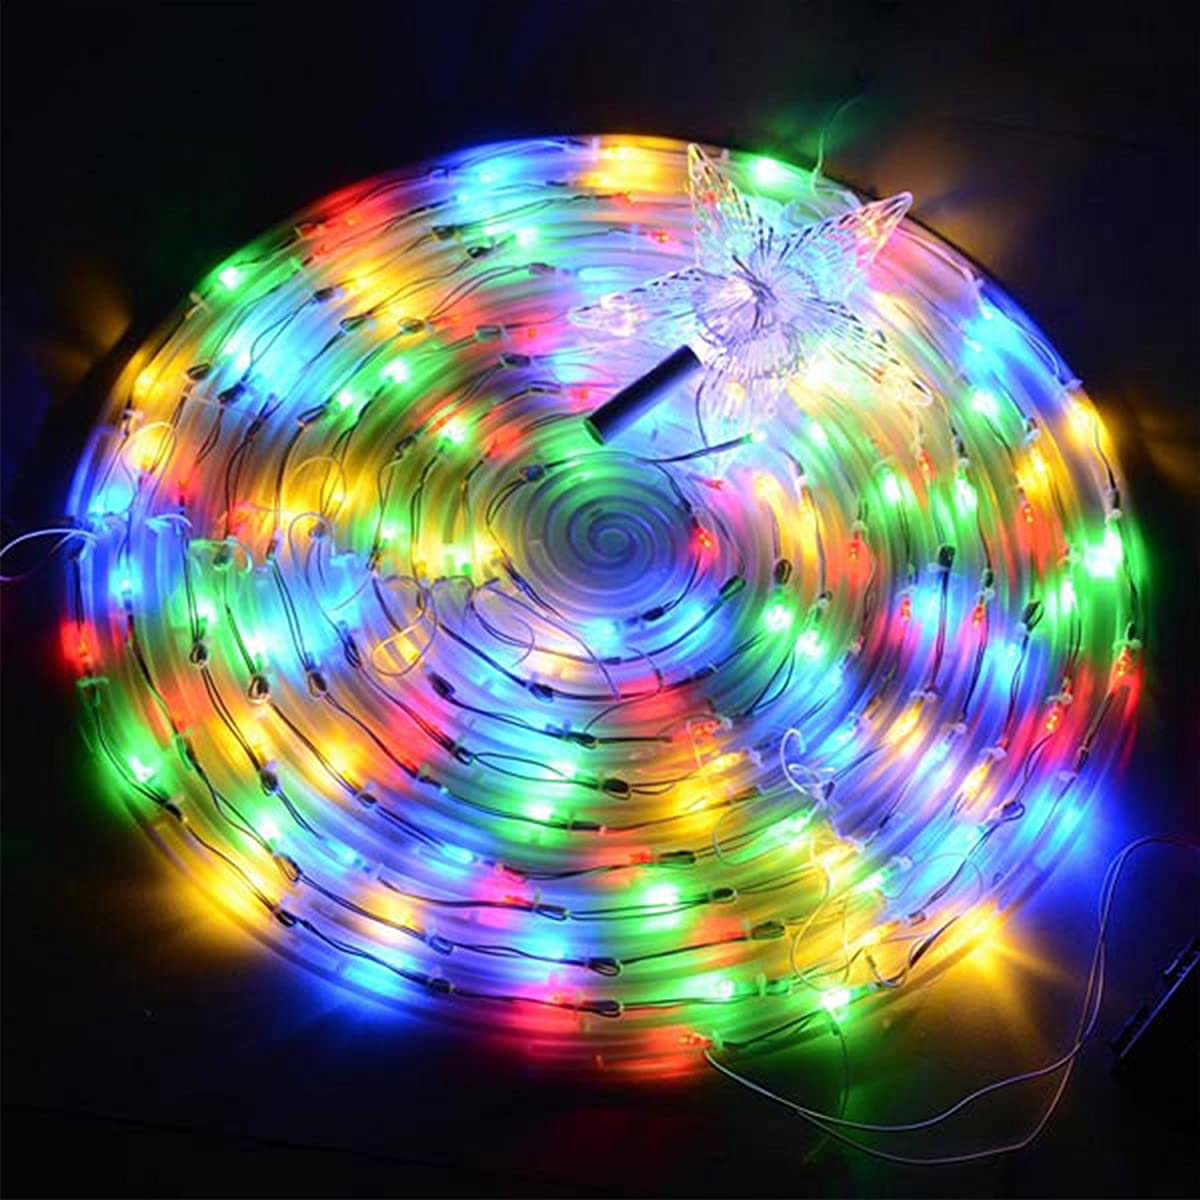 Koval Inc. 5FT / 6FT Indoor Outdoor Clear LED Lighted Spiral Christmas Tree (6FT, Multi Color)